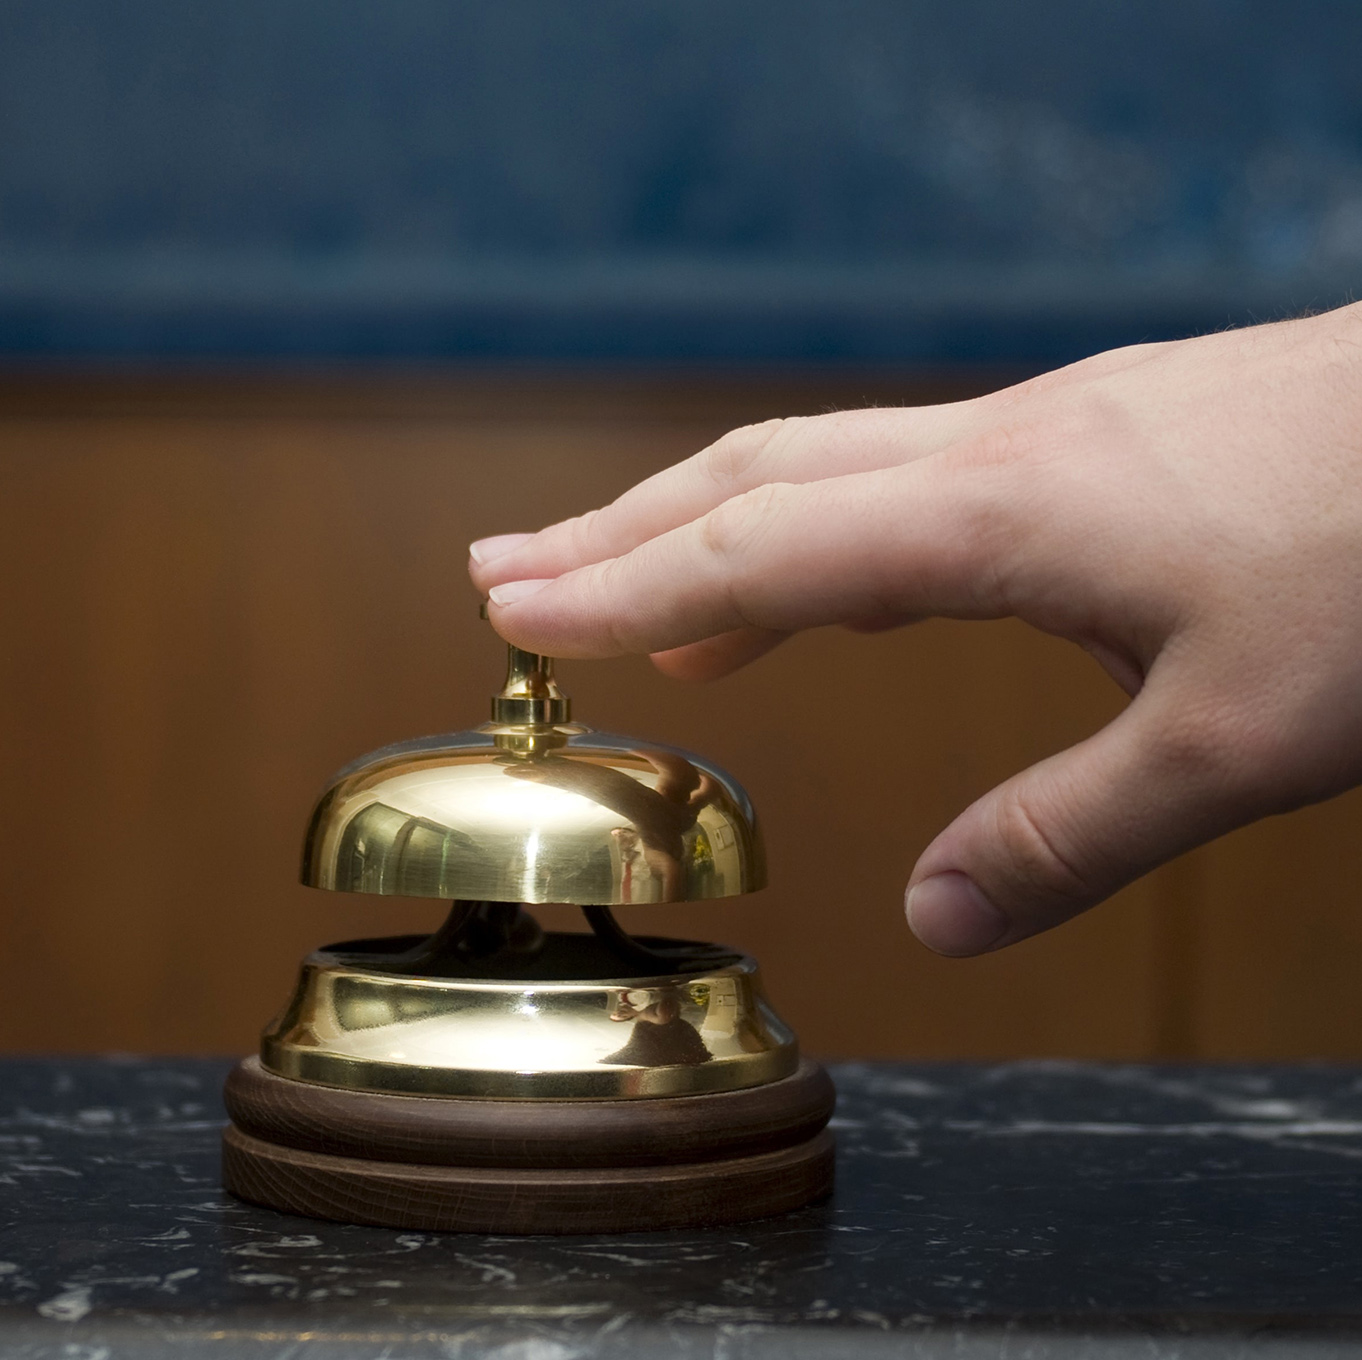 A hand reaches out to ring a service bell on a desk